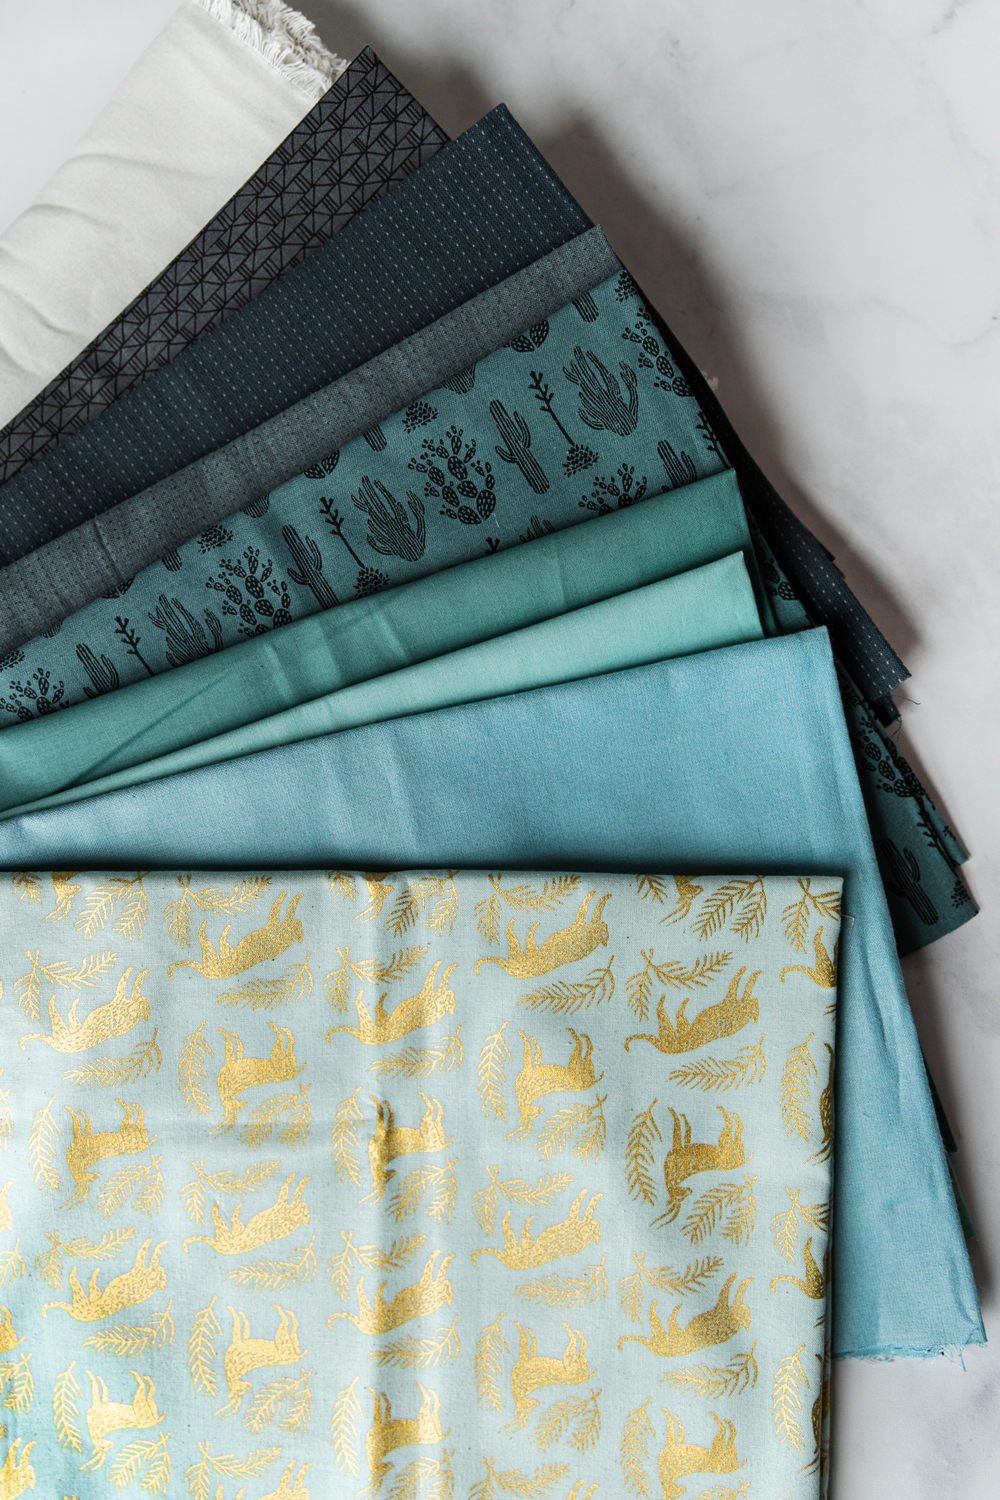 The Shine quilt along is a 7-week online community sewing event focused on making the throw Shine quilt pattern. In week 1 we pick fabric. suzyquilts.com #neutralquilt #quiltpattern